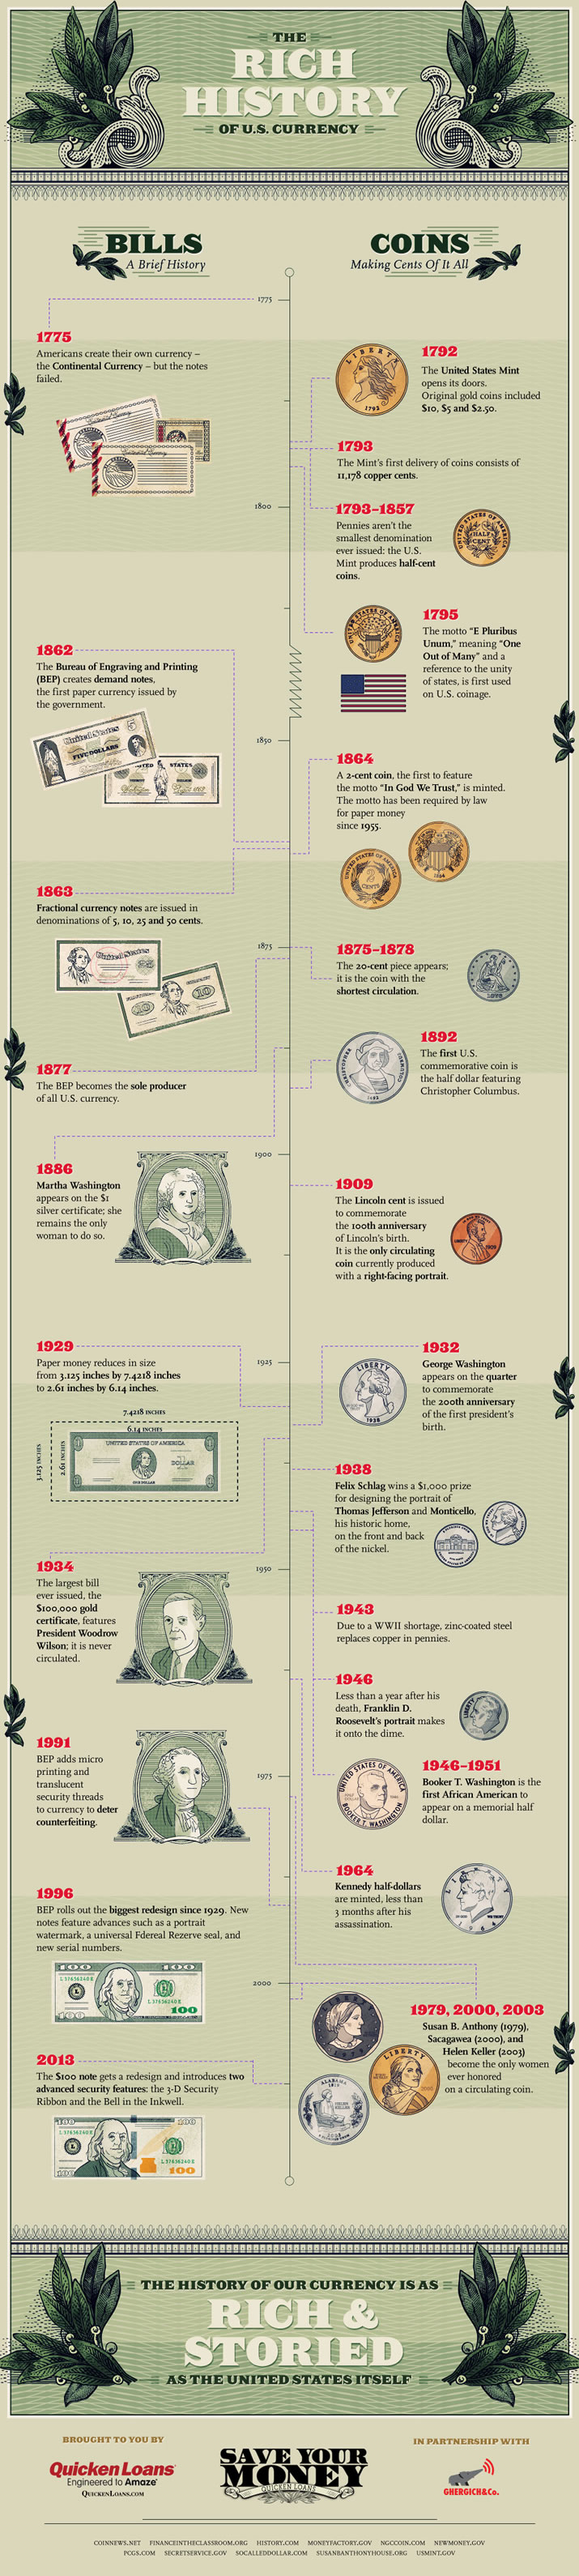 The RIch History of U.S. Currency